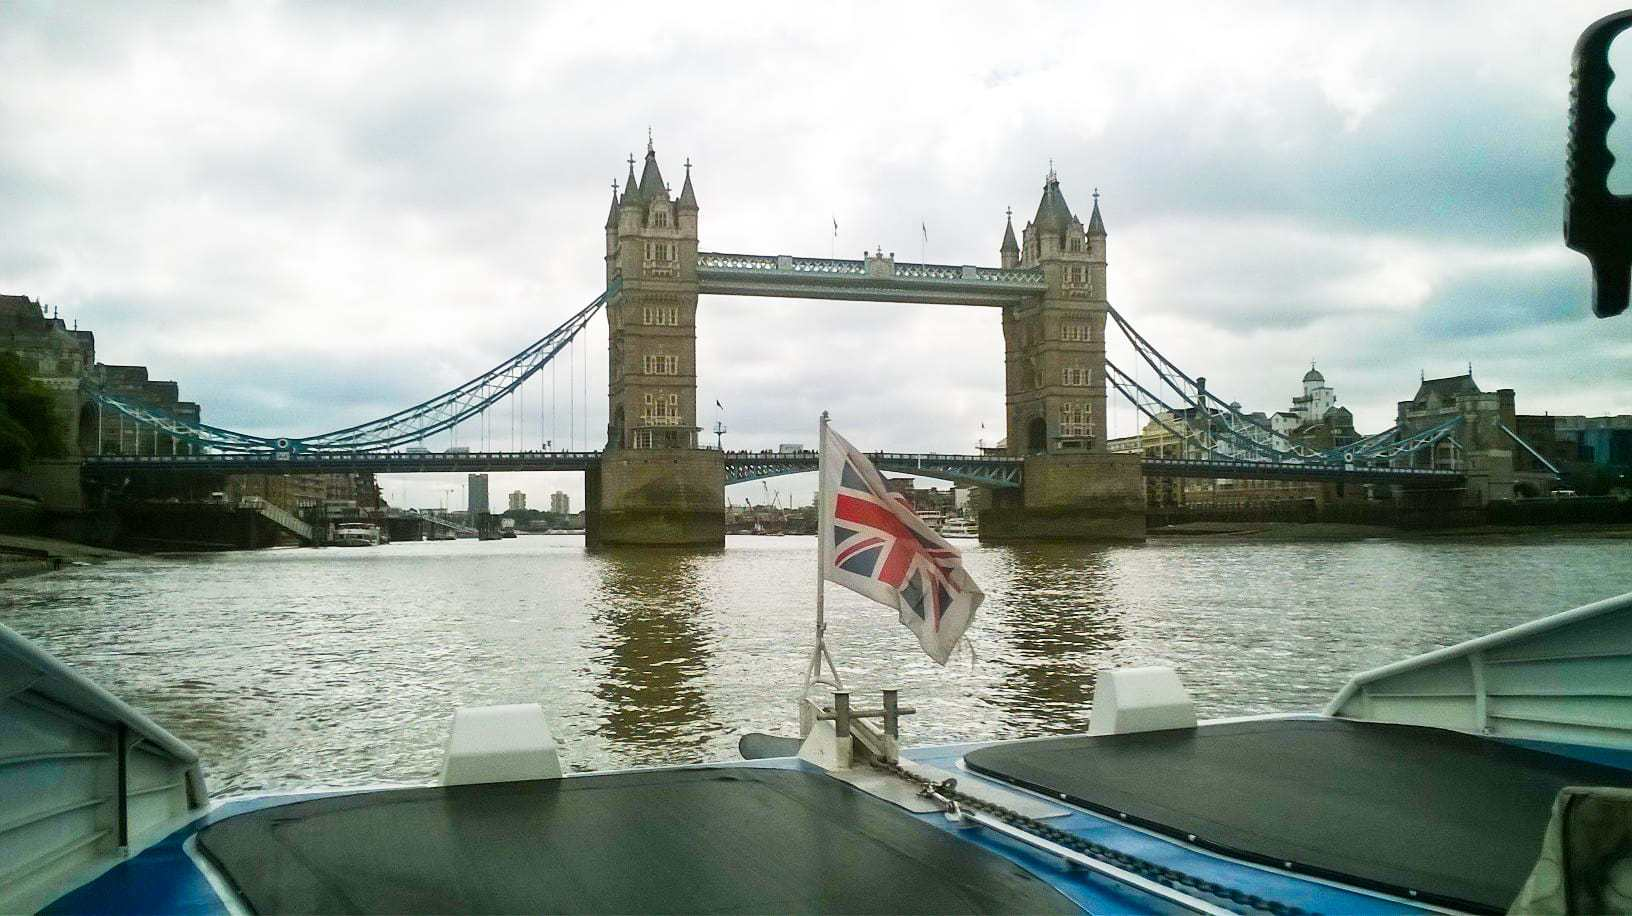 Family Day Out in London on the River